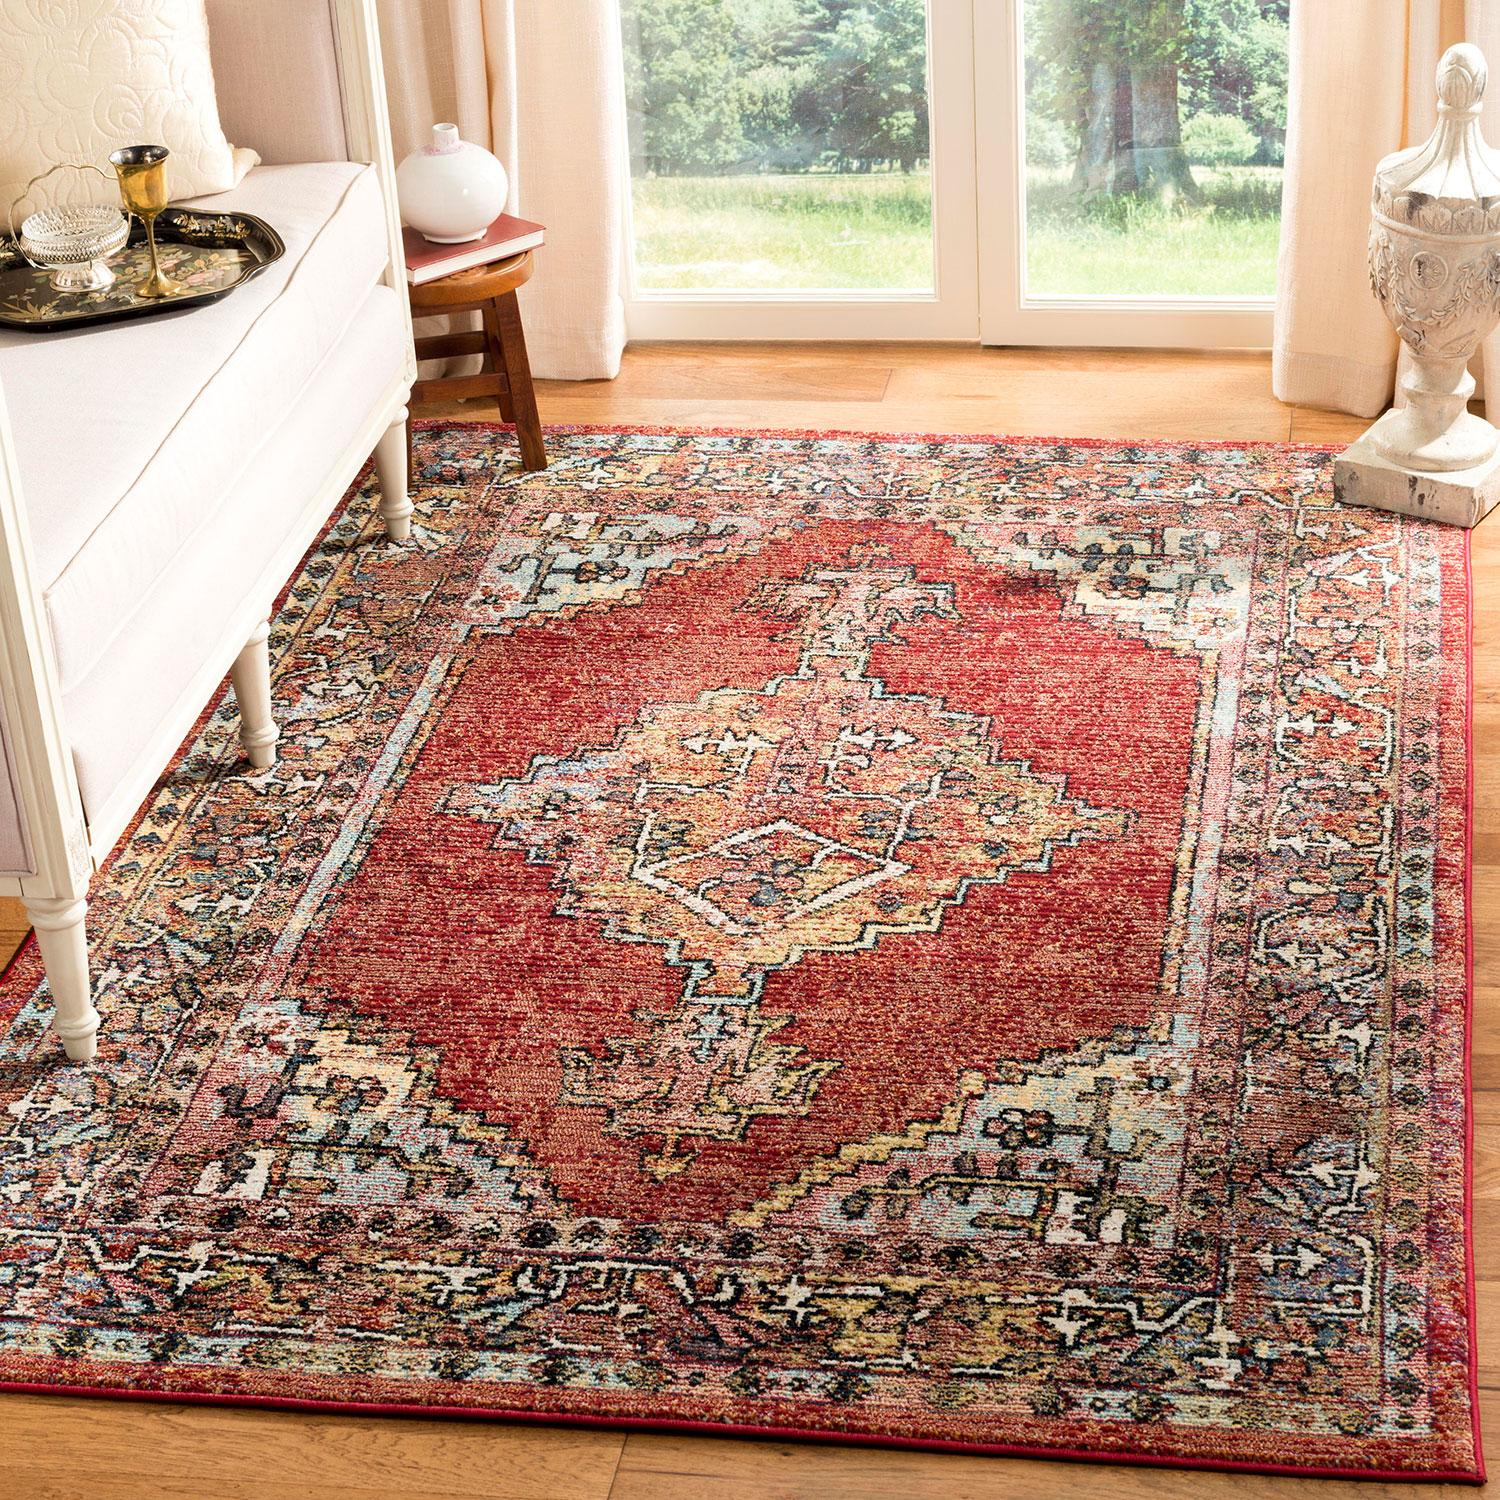 Rug Svh650r Savannah Area Rugs By Safavieh